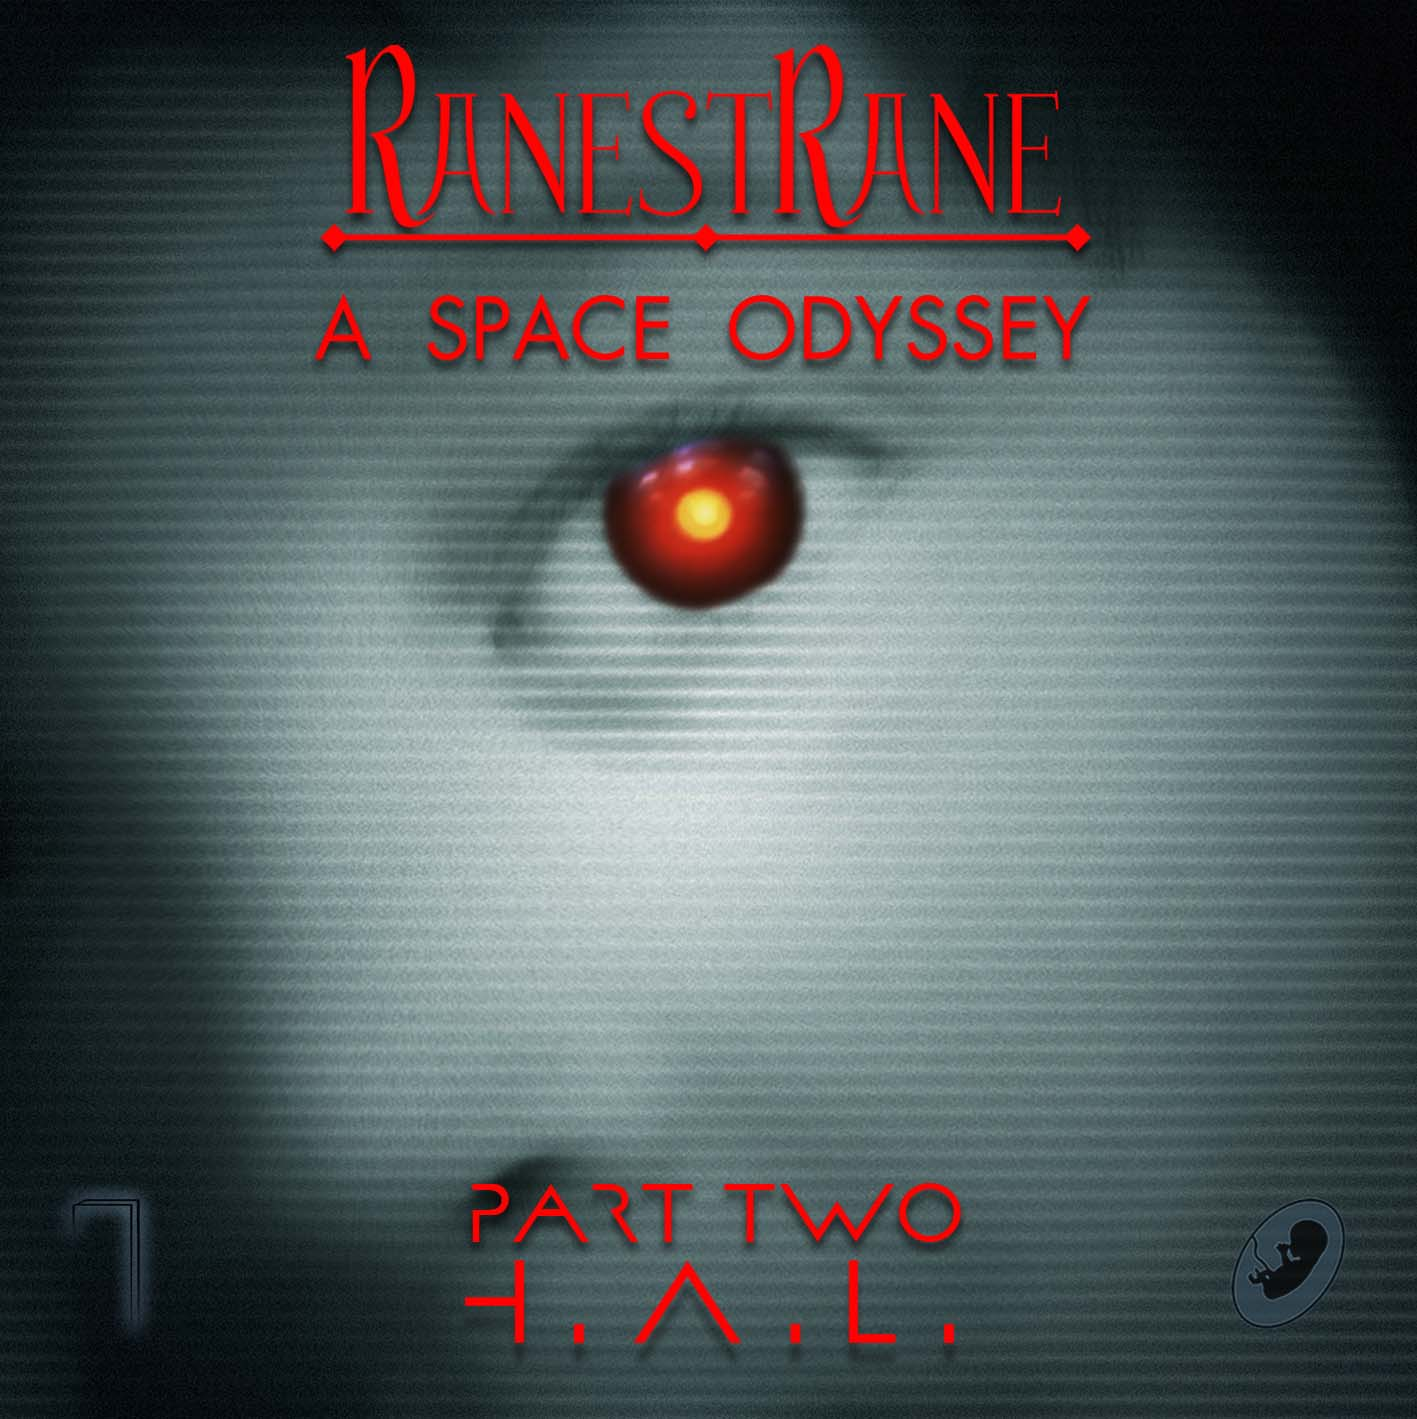 RanestRane - A Space Odysey Part. 2 - H.A.L. (Lp)